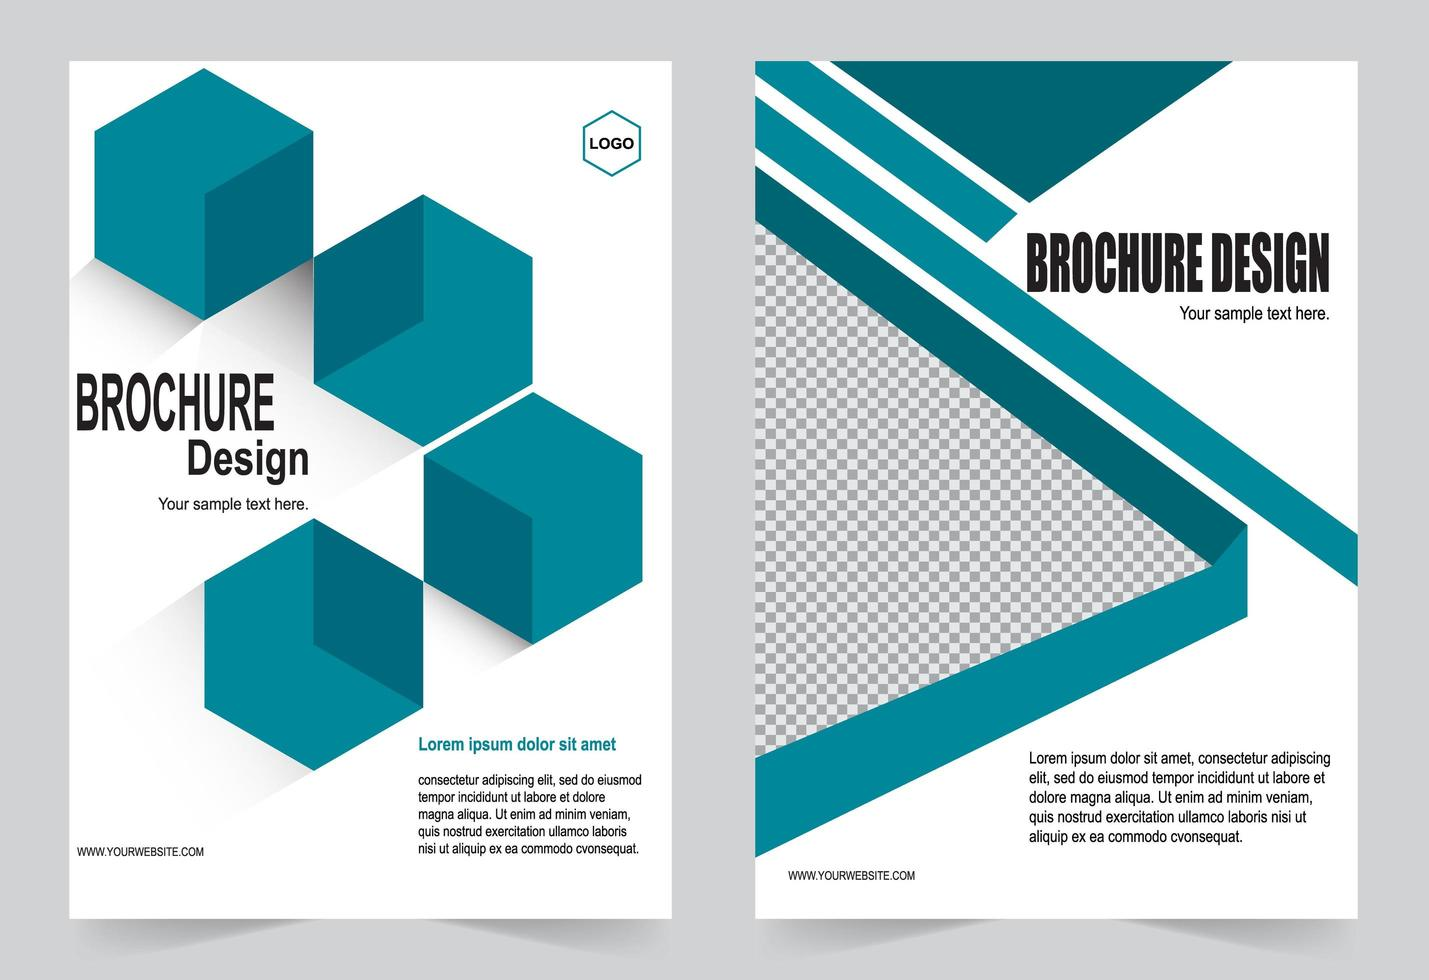 Teal Cover Template vector